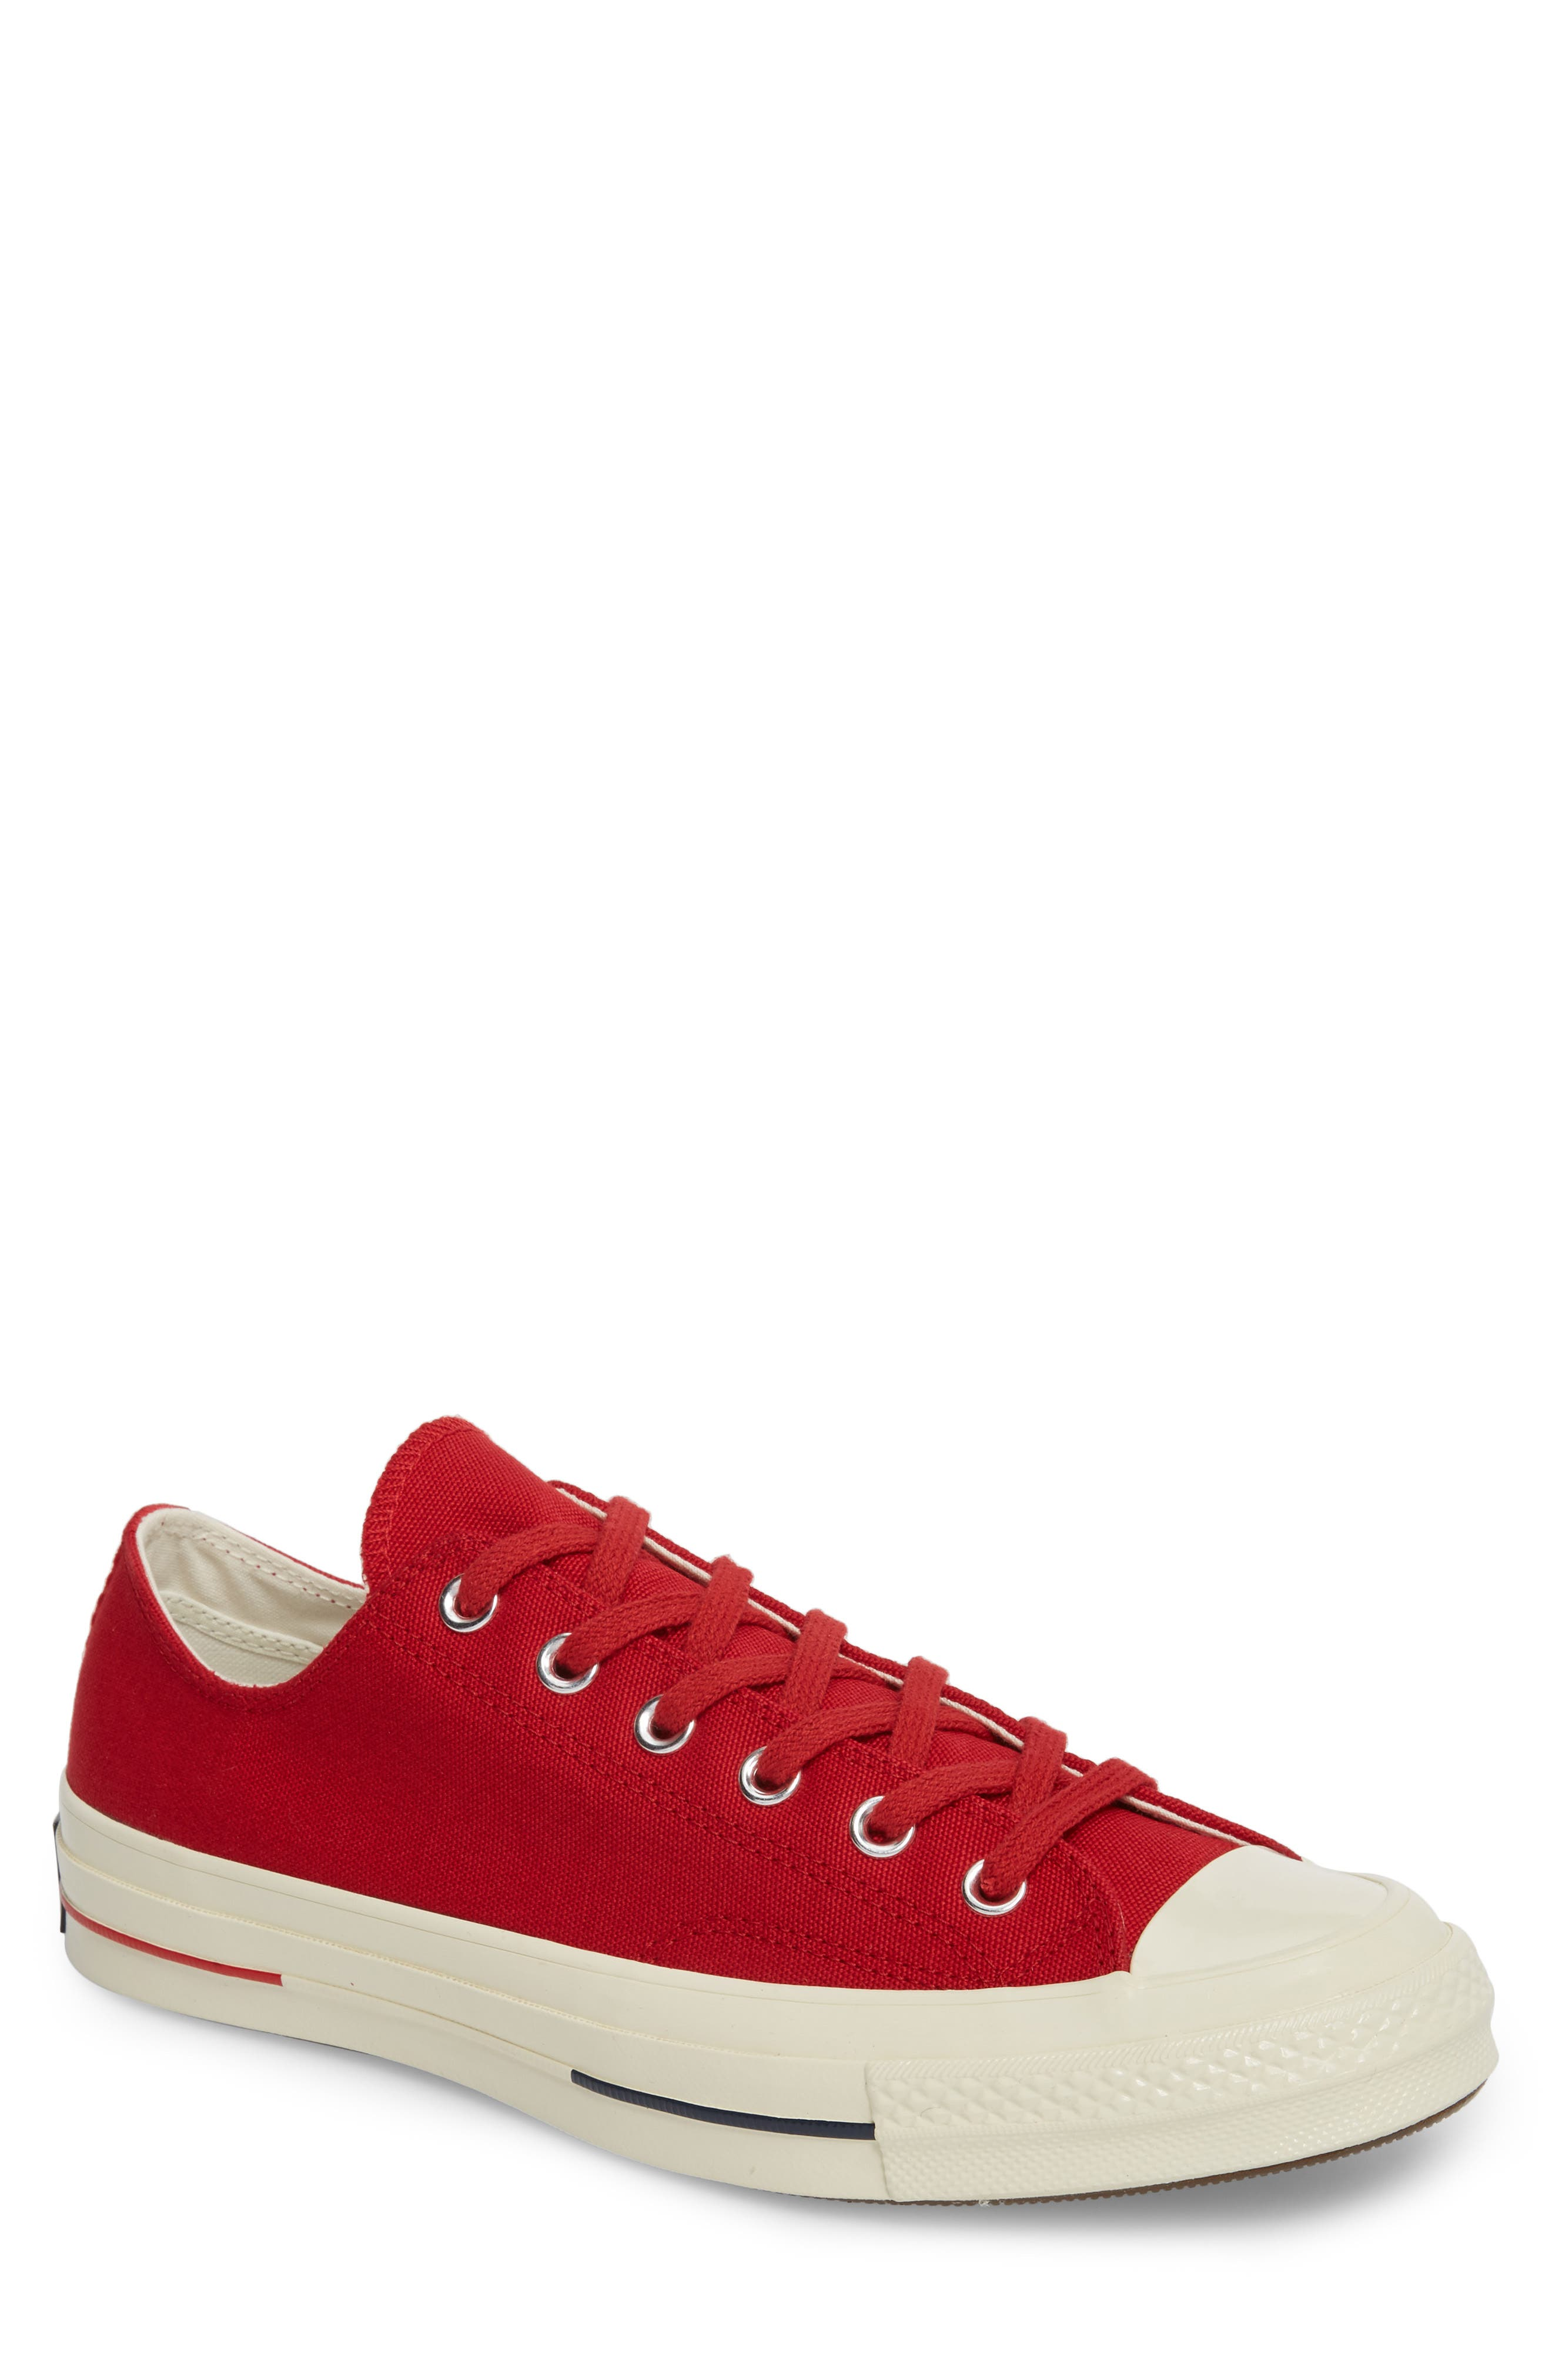 Chuck Taylor<sup>®</sup> All Star<sup>®</sup> '70s Heritage Low Top Sneaker,                             Main thumbnail 1, color,                             Gym Red